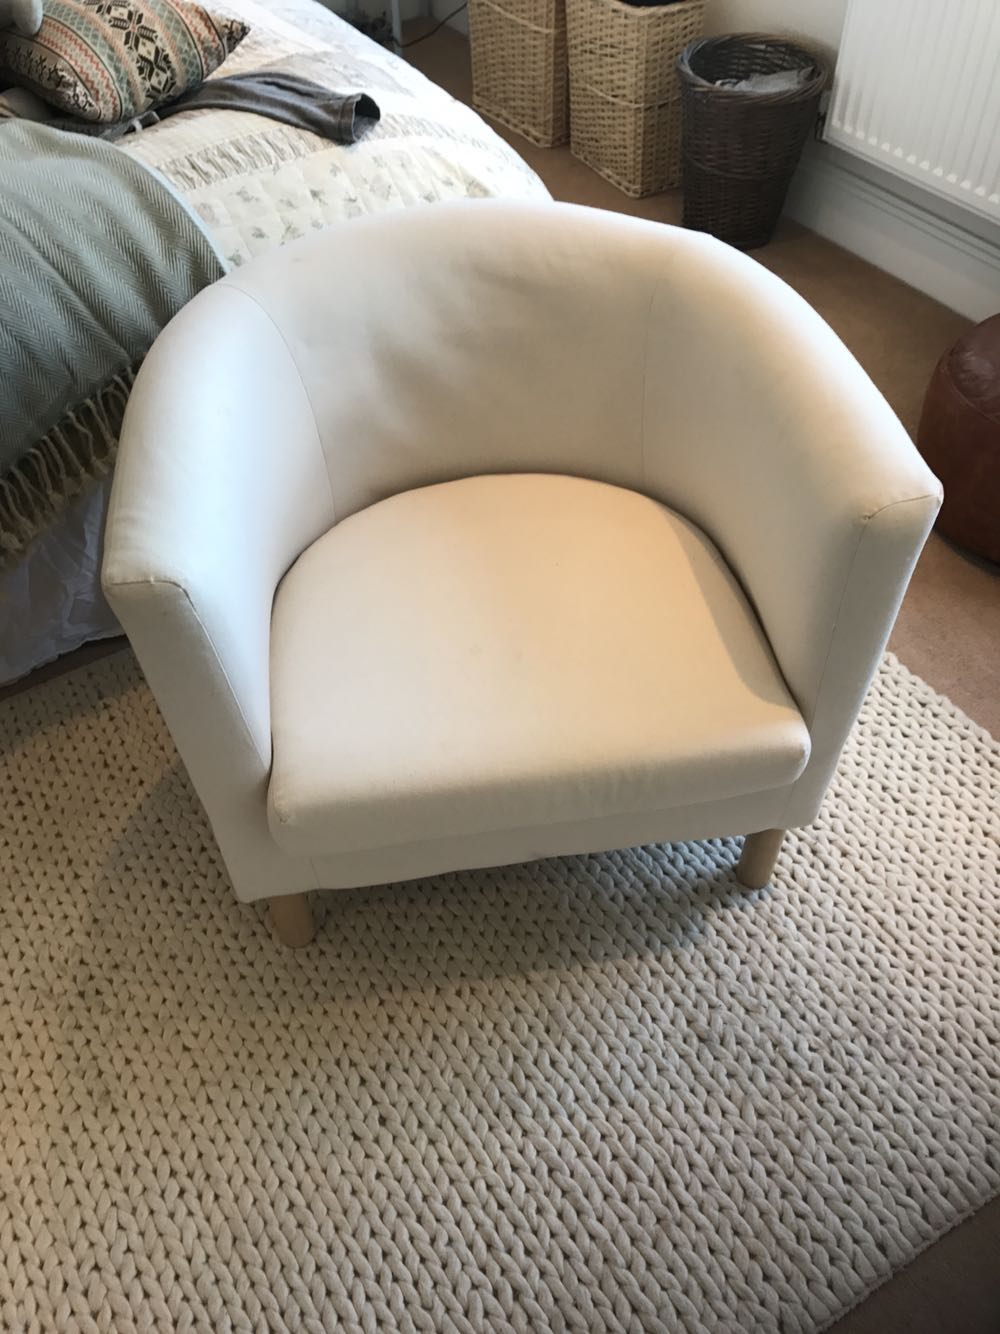 tub chair - Second Hand Household Furniture Buy and Sell in